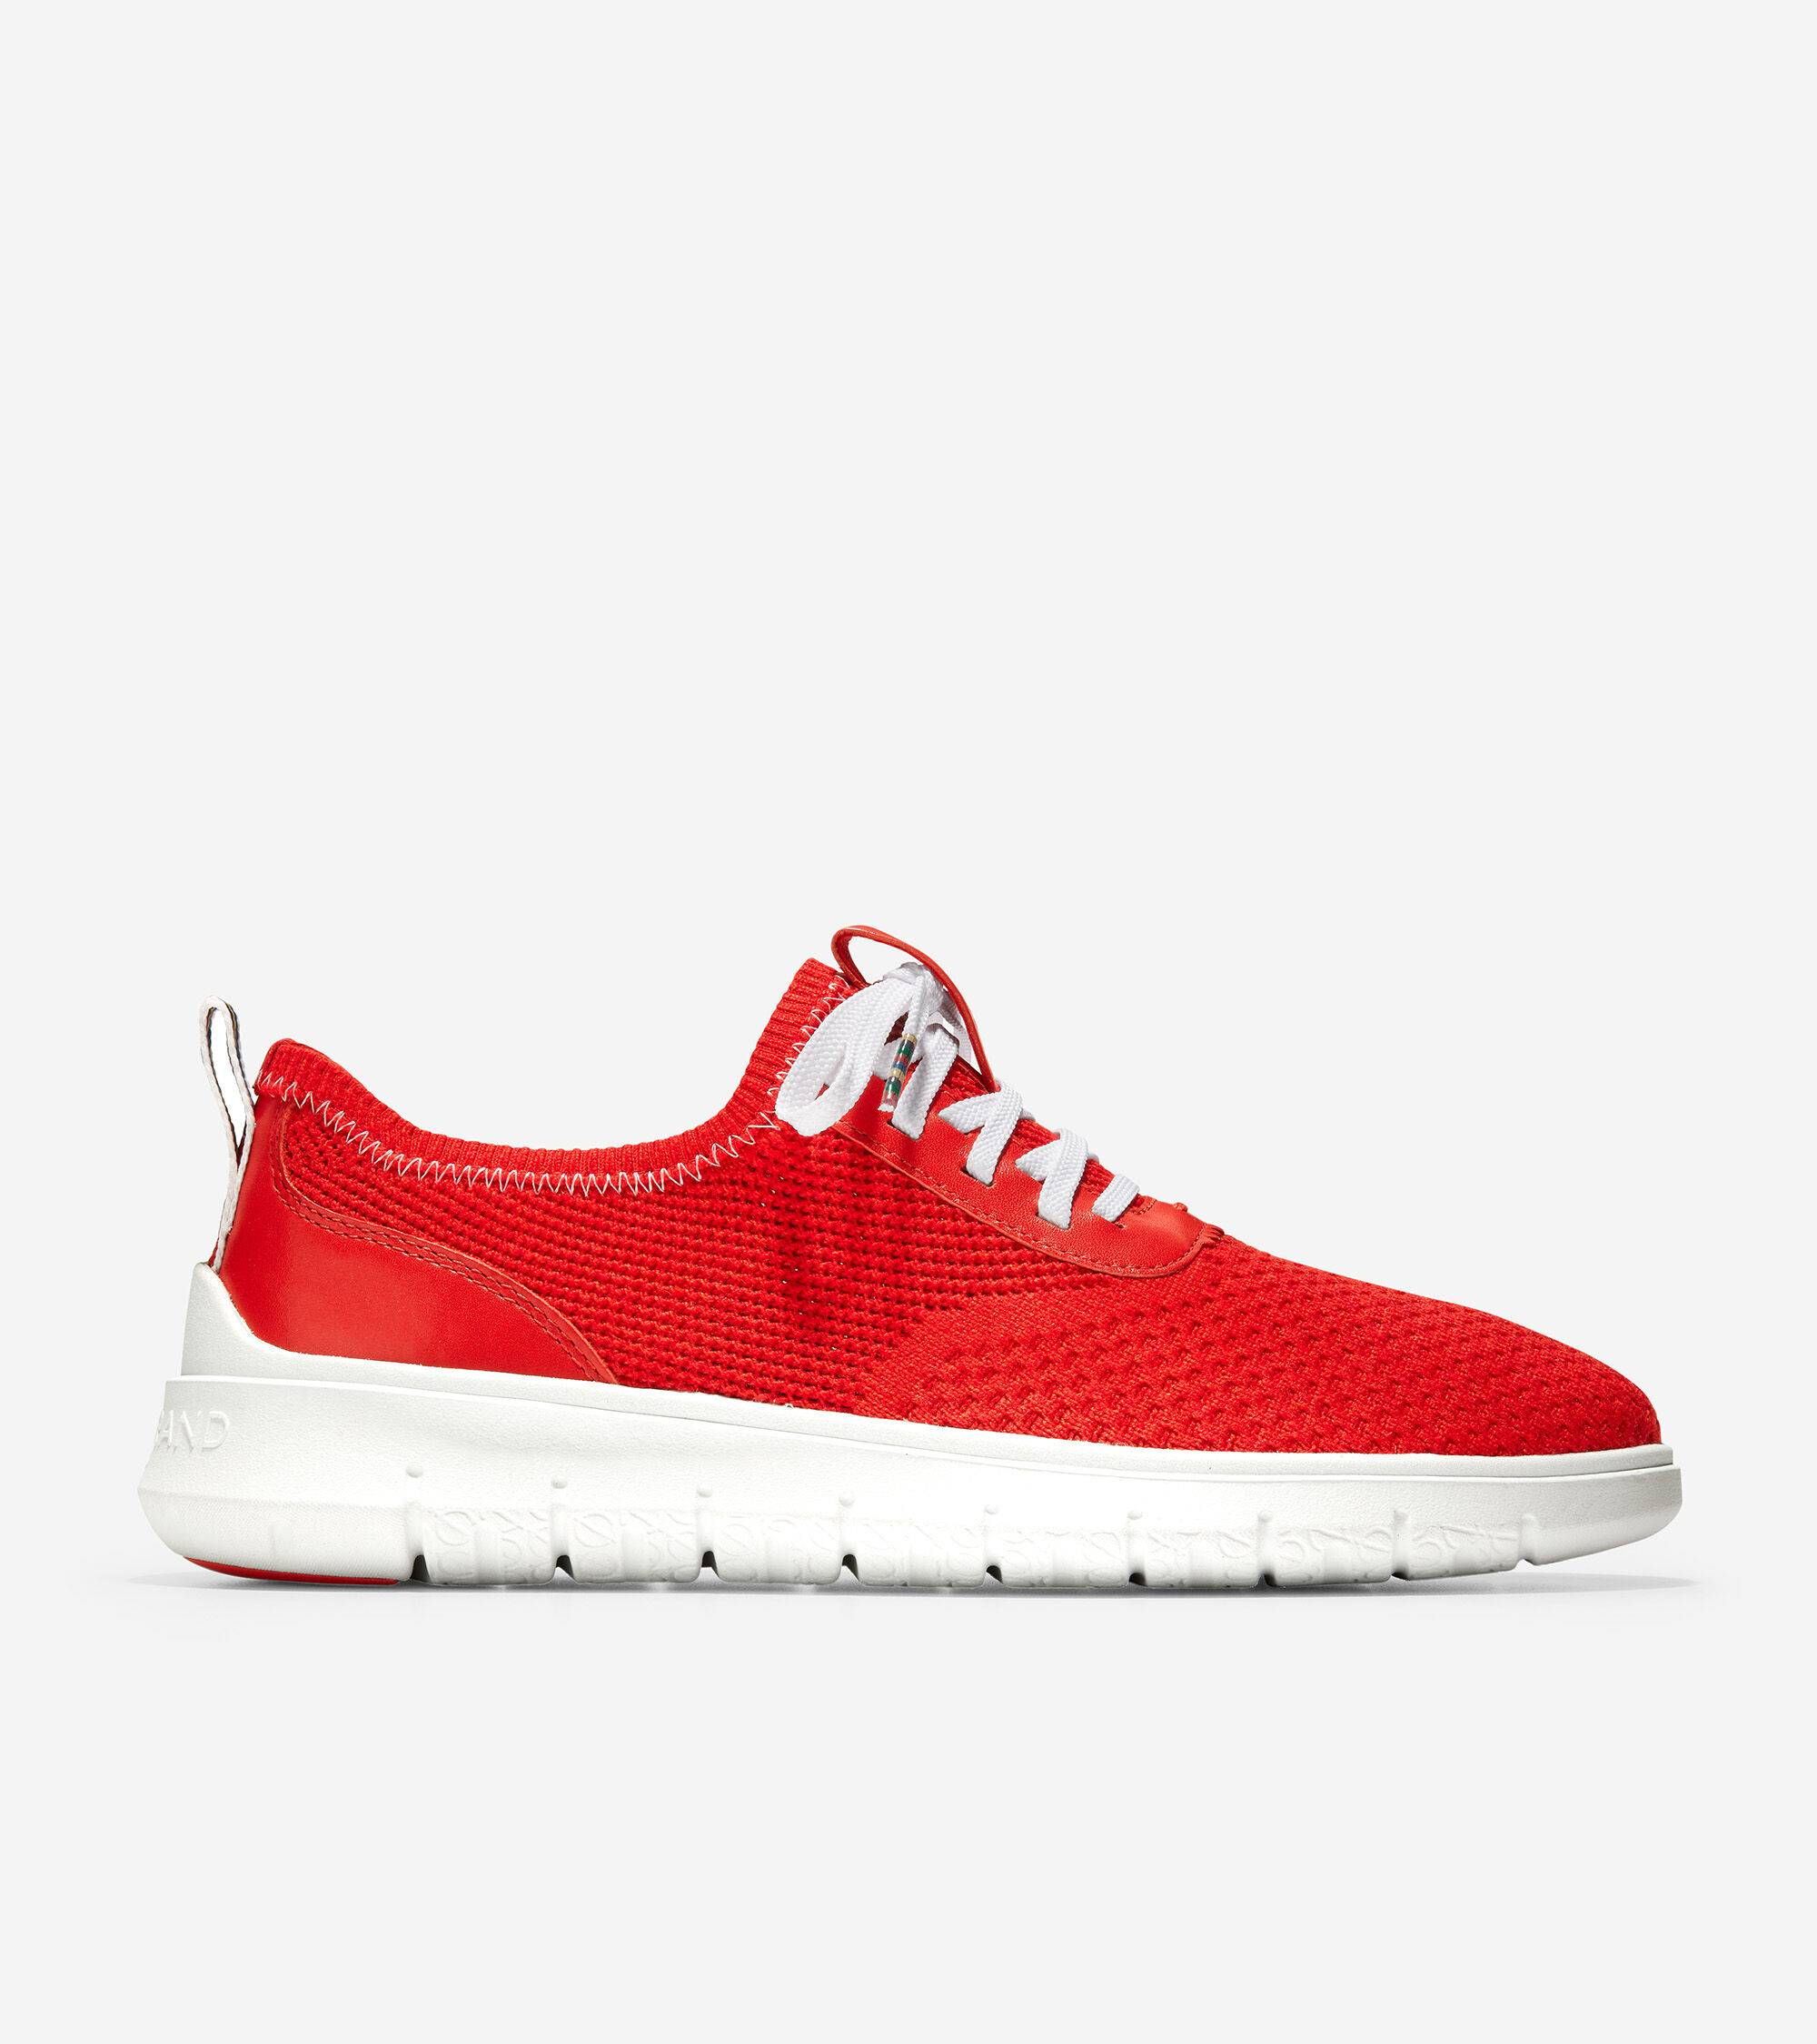 Cole Haan Generation ZERØGRAND - RED - Size: 5.5